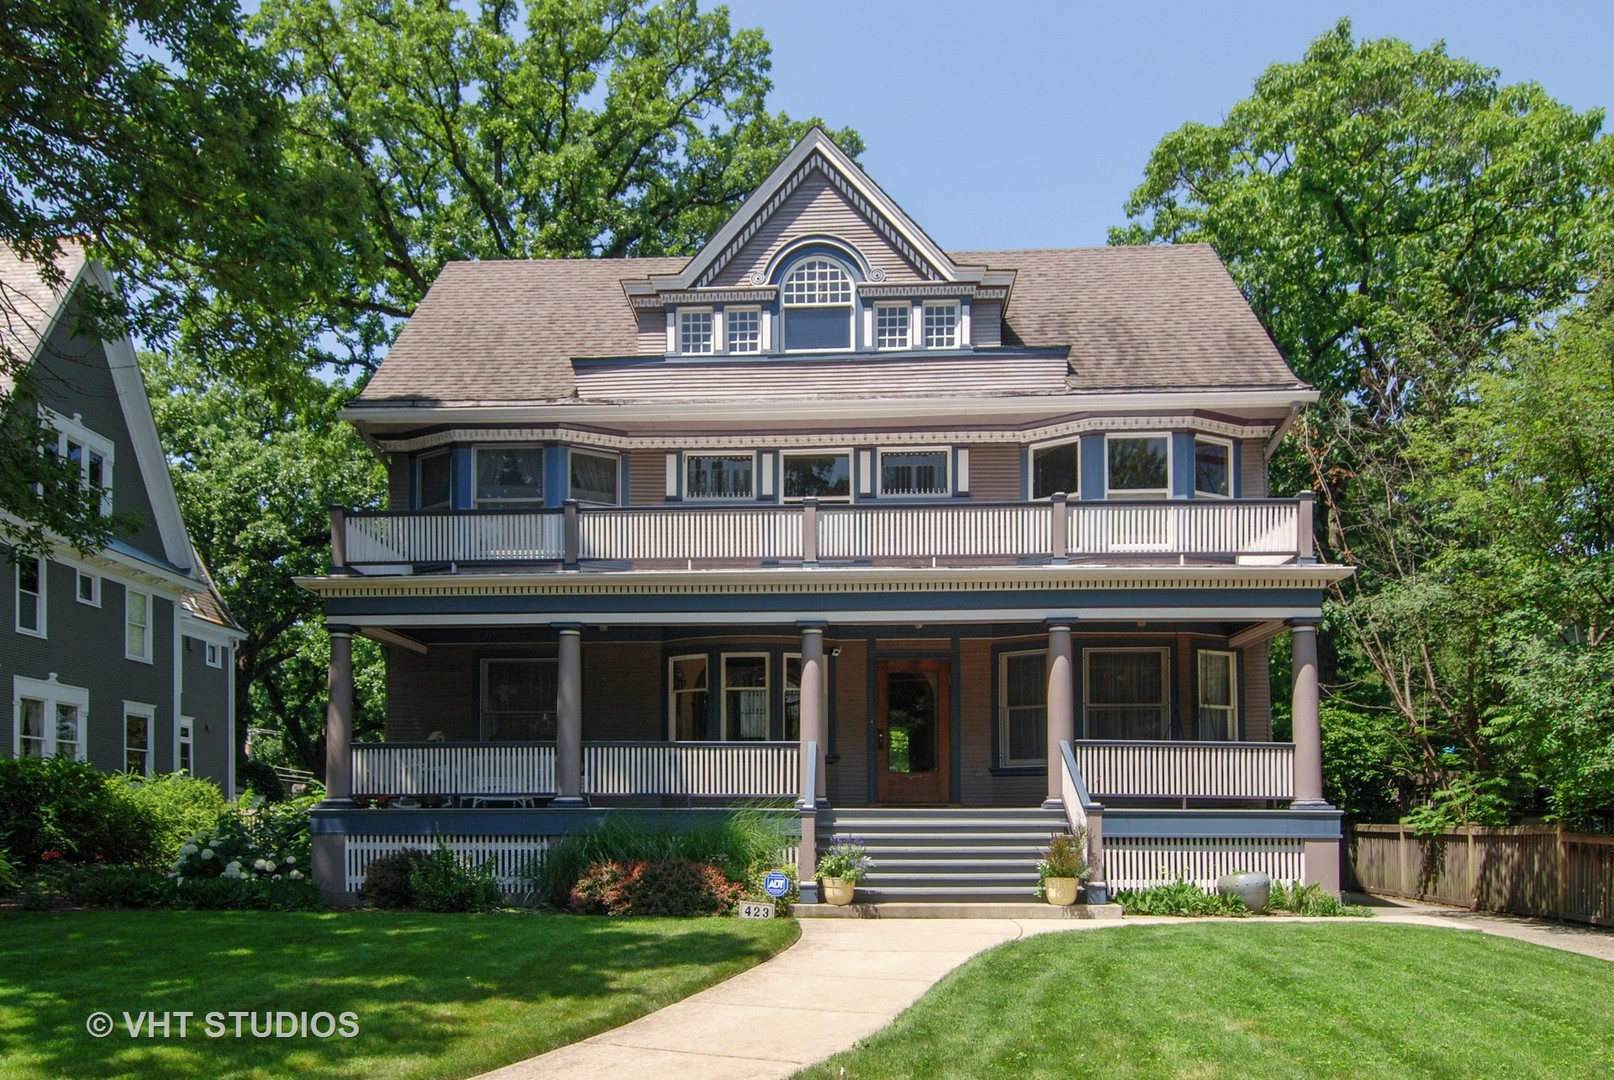 Property for sale at 423 North Kenilworth Avenue, OAK PARK,  Il 60302